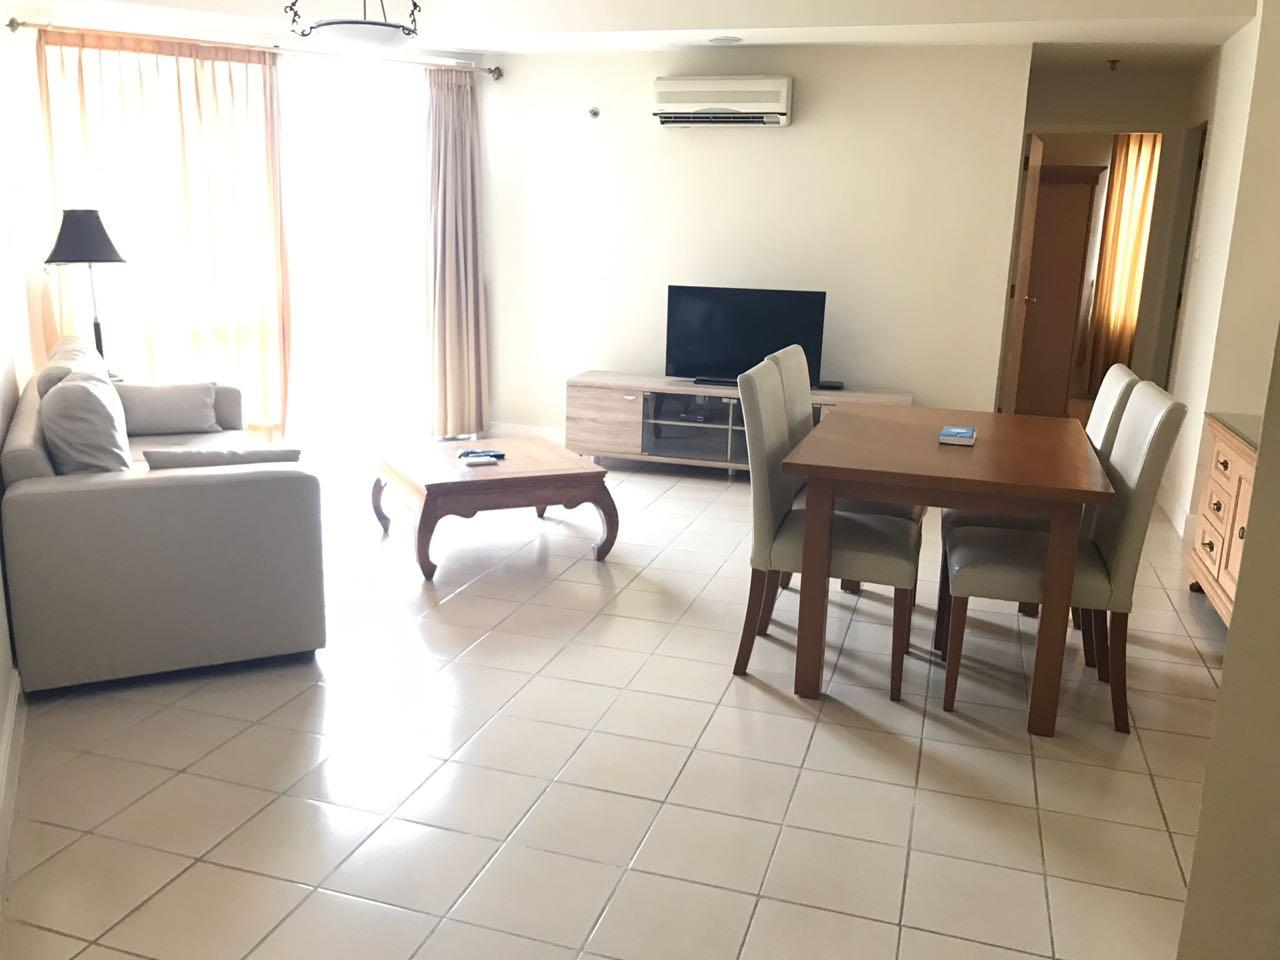 Batavia Apartemen Benhil - 2 Bedroom @ Apartment Batavia By Robby